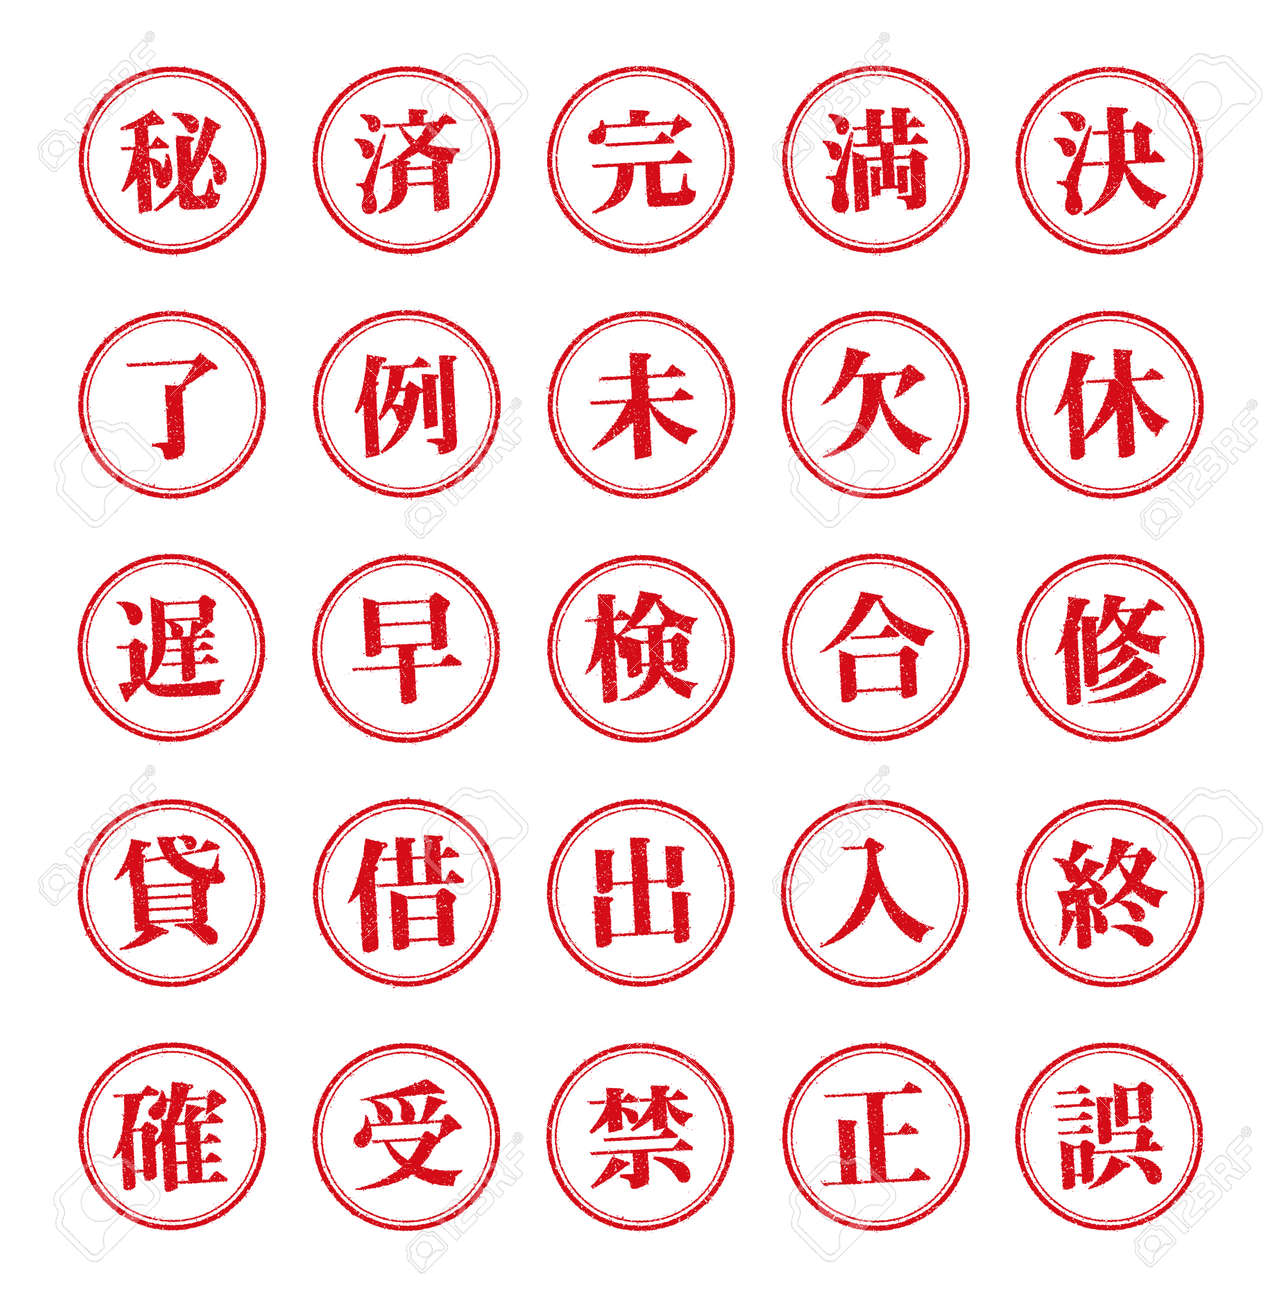 Rubber stamp illustration set for Japanese business ( One kanji character series ) - 168732426